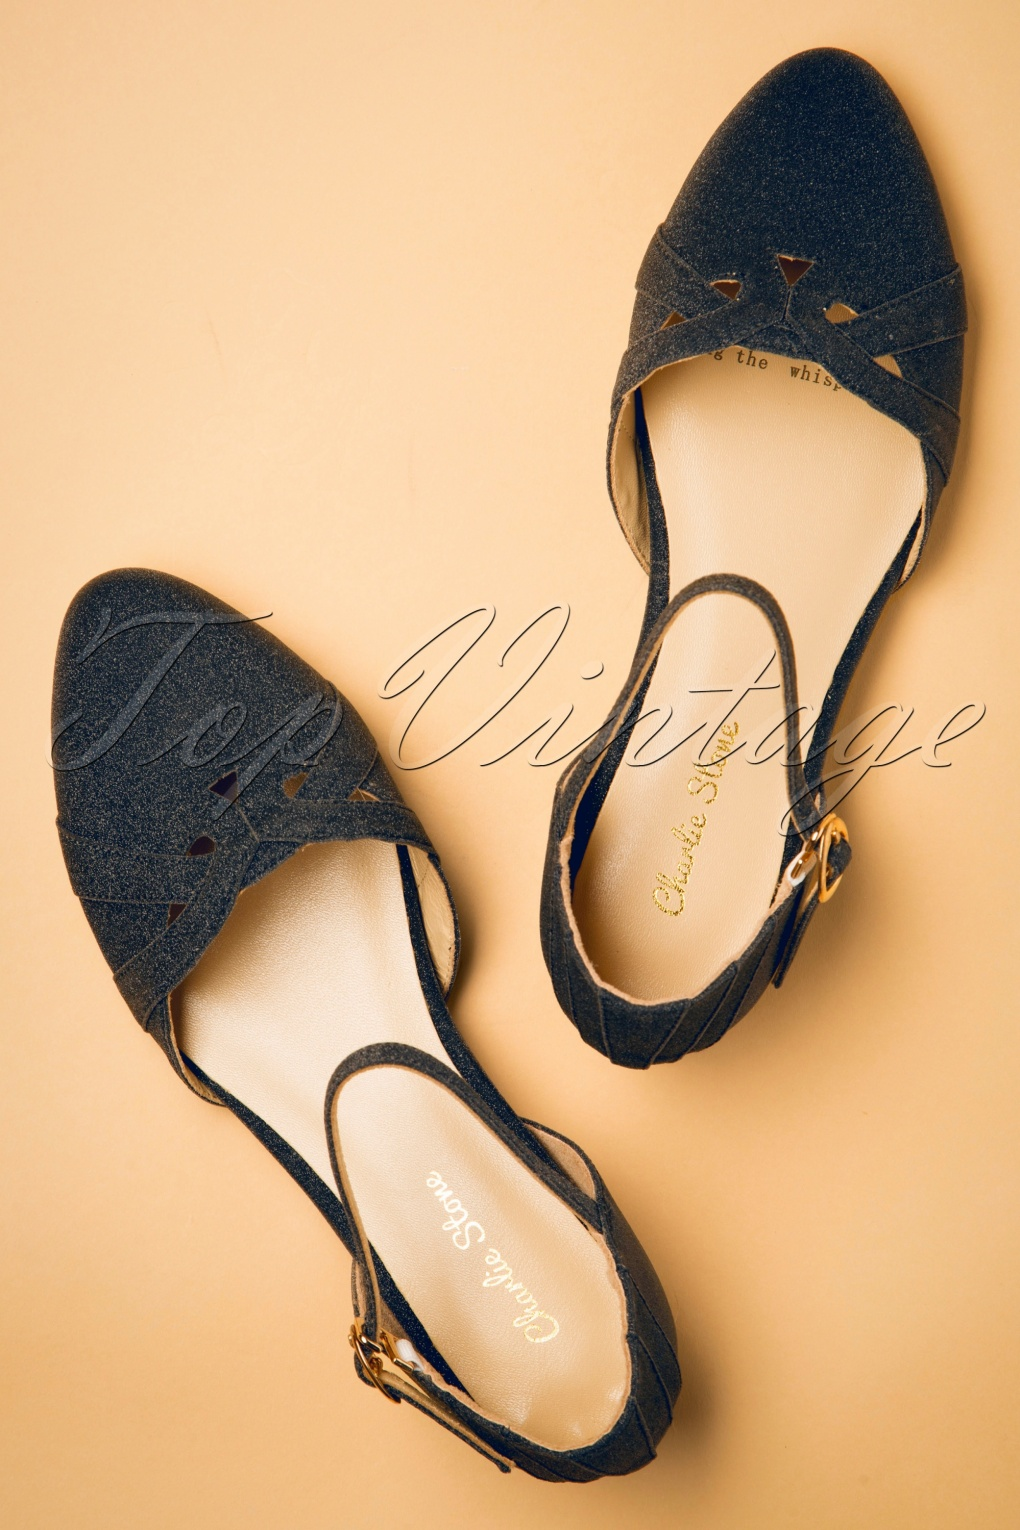 Vintage Style Shoes, Vintage Inspired Shoes 20s Manhattan Glitter Flats in Midnight Black £80.50 AT vintagedancer.com